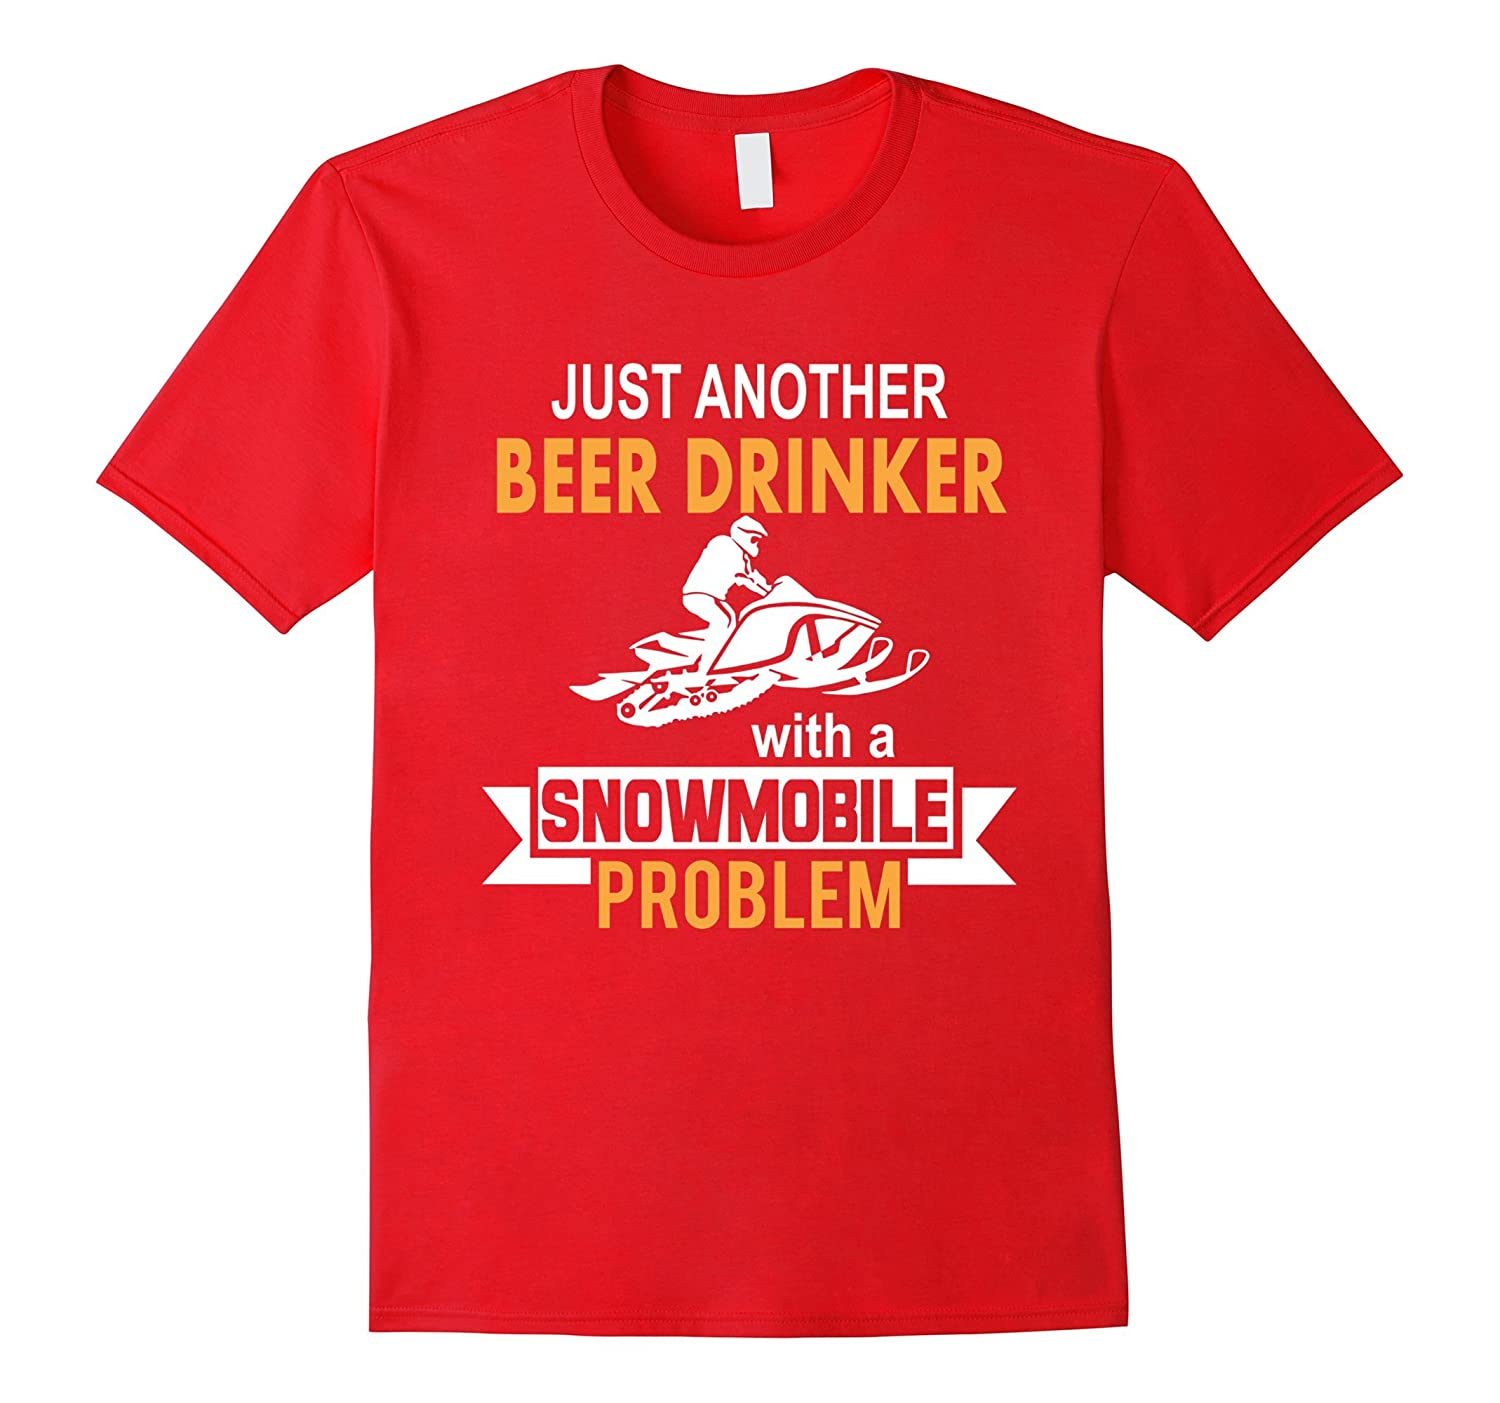 Funny Snowmobile Shirt – Just Another Beer Drinker Problem